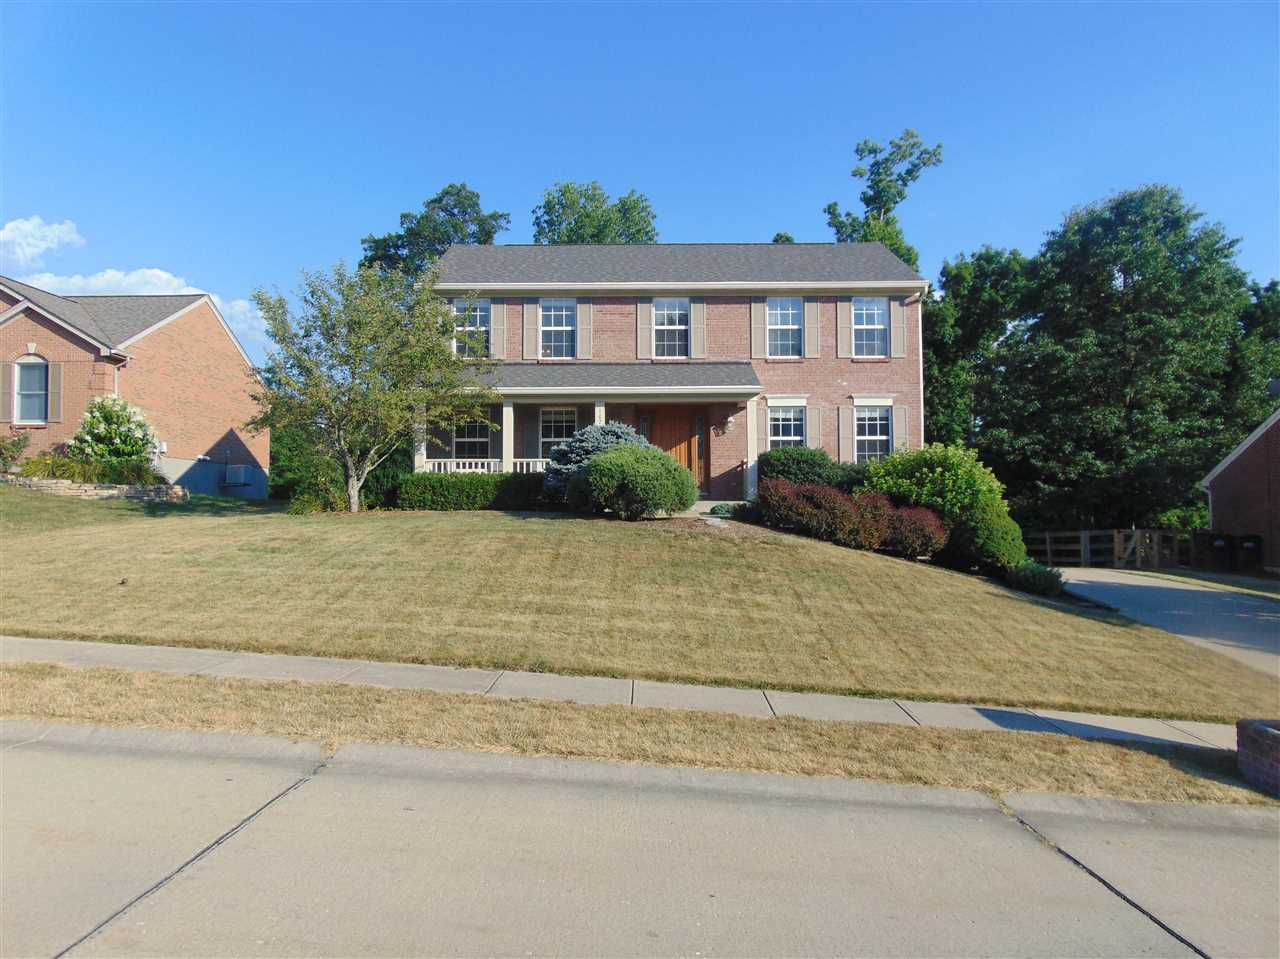 Photo 1 for 10797 Autumnridge Dr Independence, KY 41051